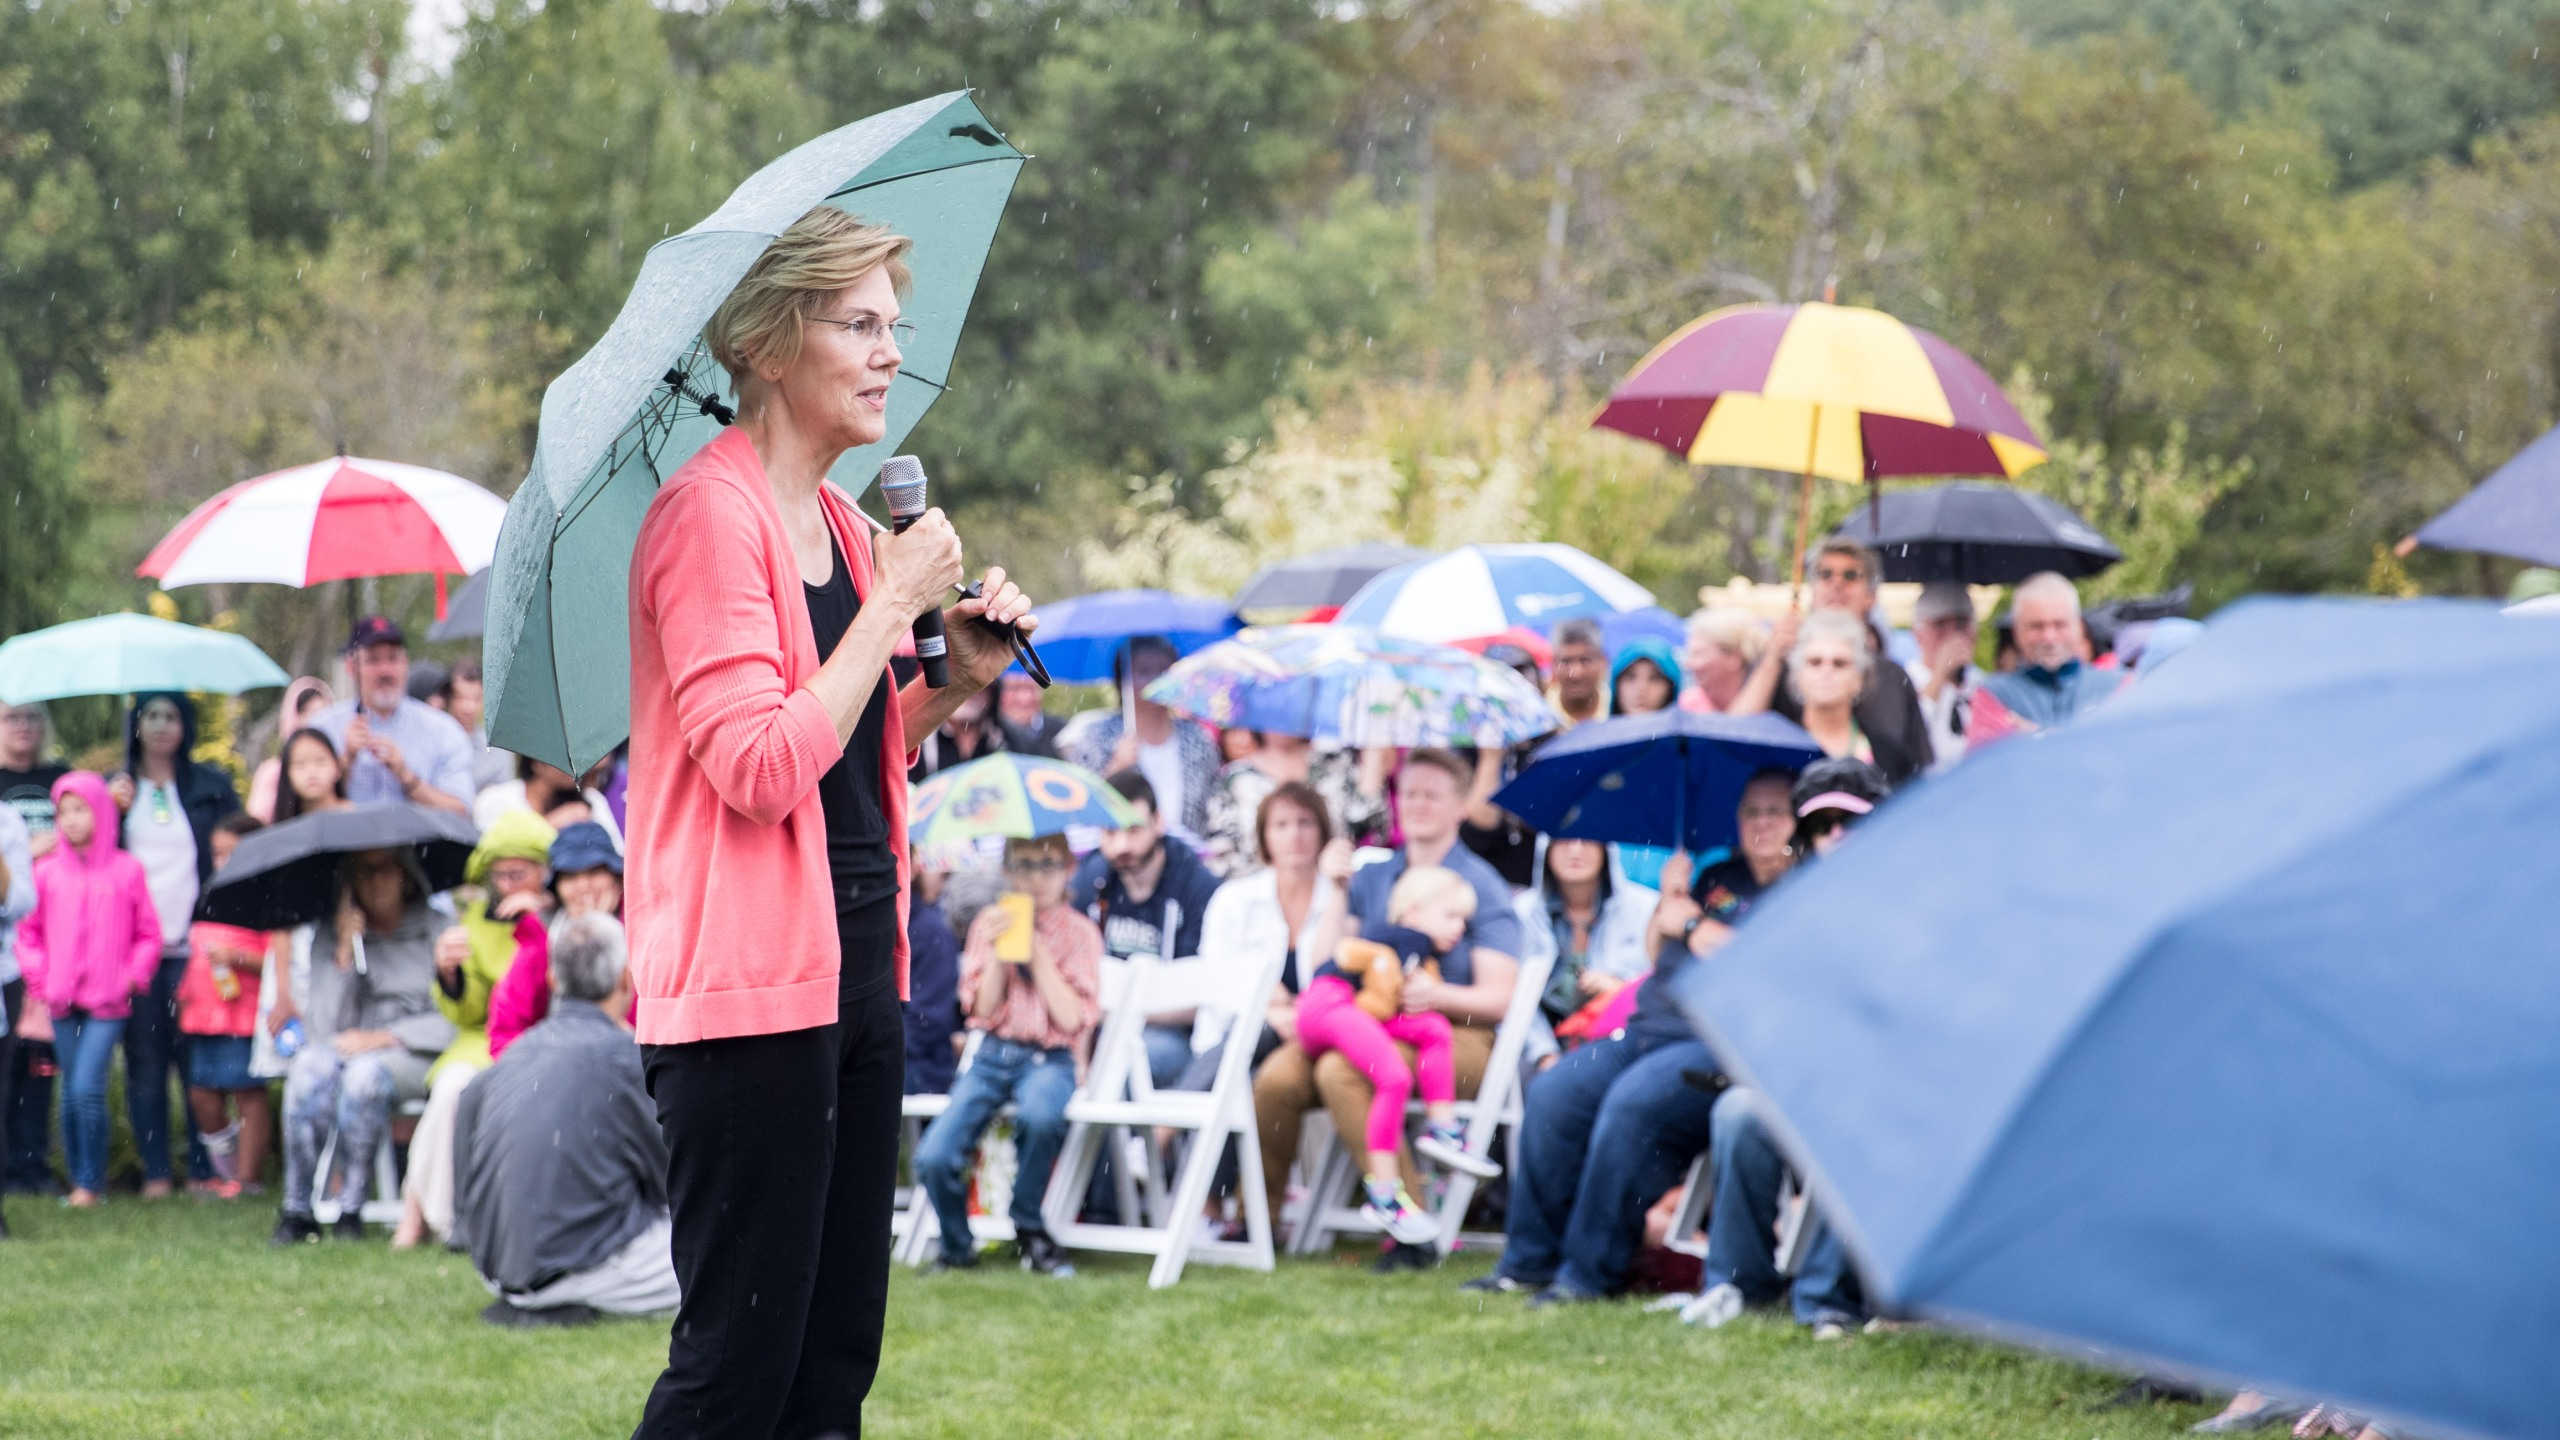 Sen. Elizabeth Warren speaks to a crowd of around 800 as it begins to rain during a Labor Day house party in Hampton Falls, New Hampshire, on Sept. 2, 2019. (Credit: Scott Eisen / Getty Images)